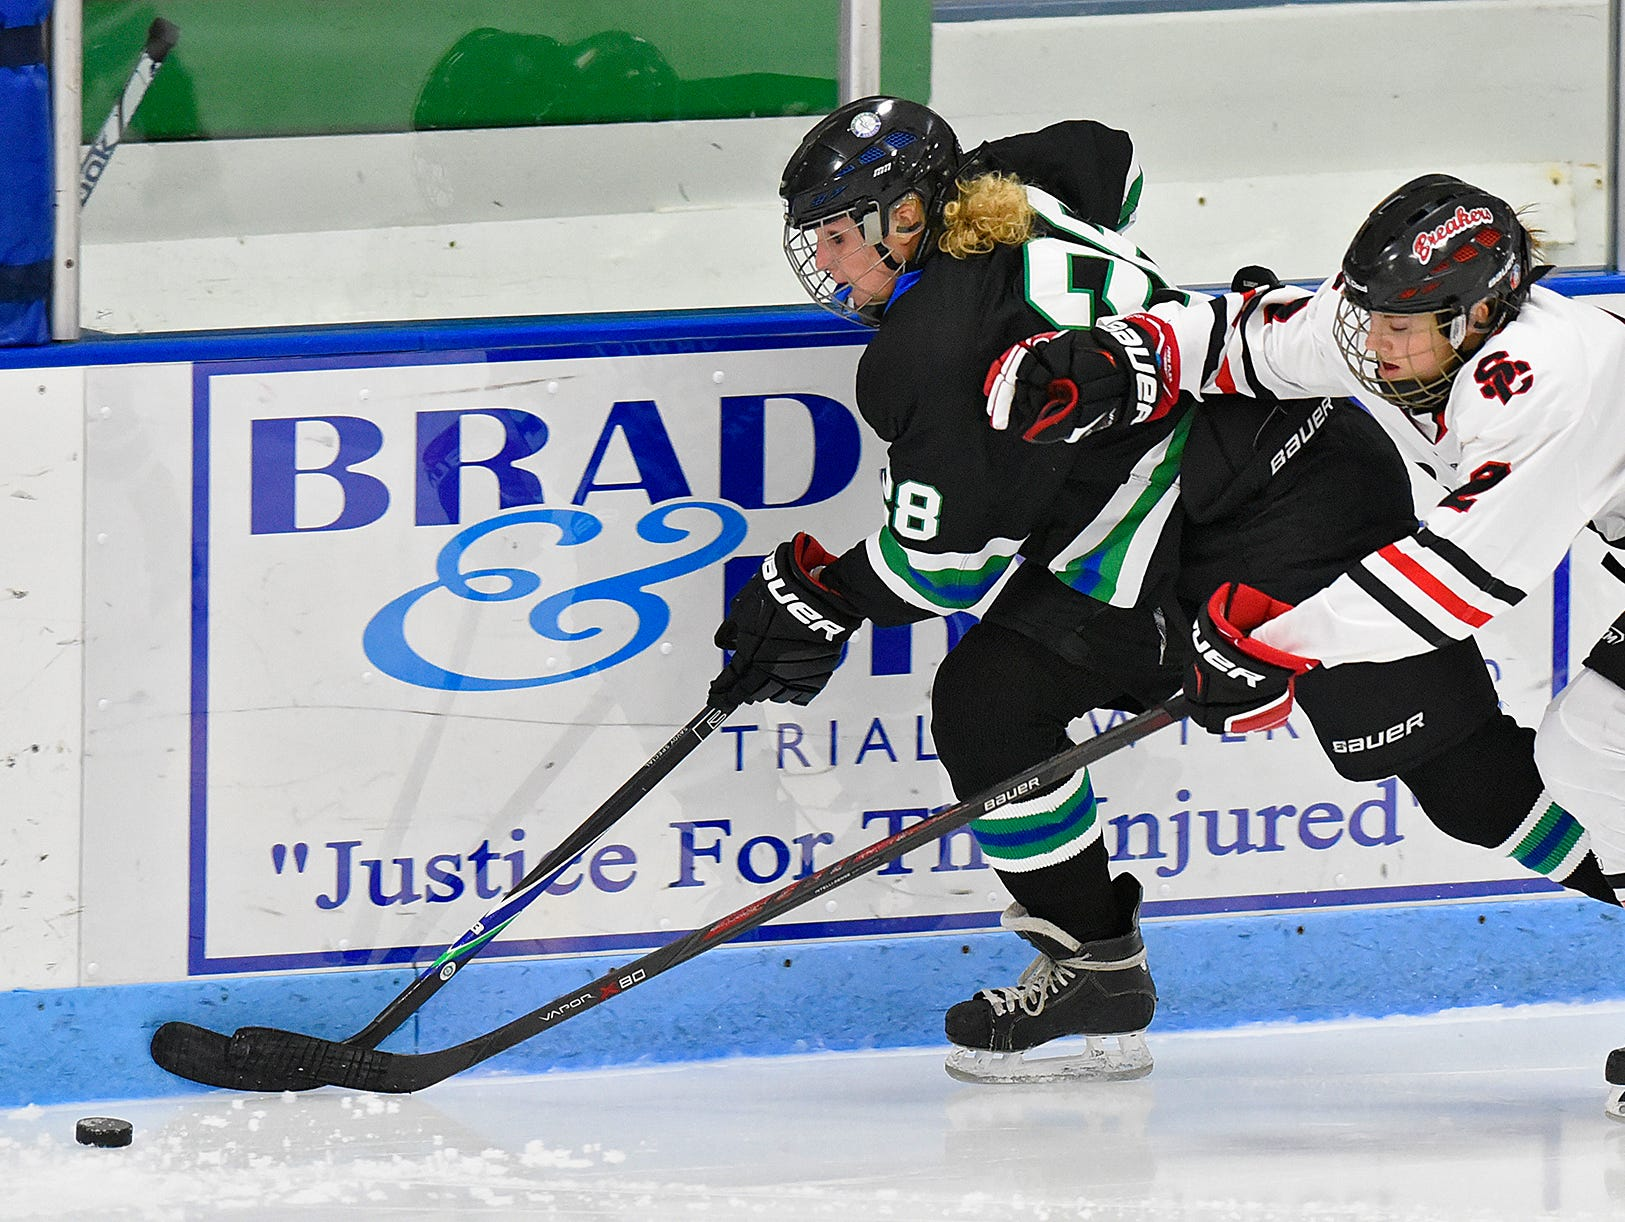 Allie Hemmesch of the Storm 'N Sabres struggles for control of the puck with Sophia McCann of the Icebreakers during the first period of Thursday's game at the MAC in St. Cloud.